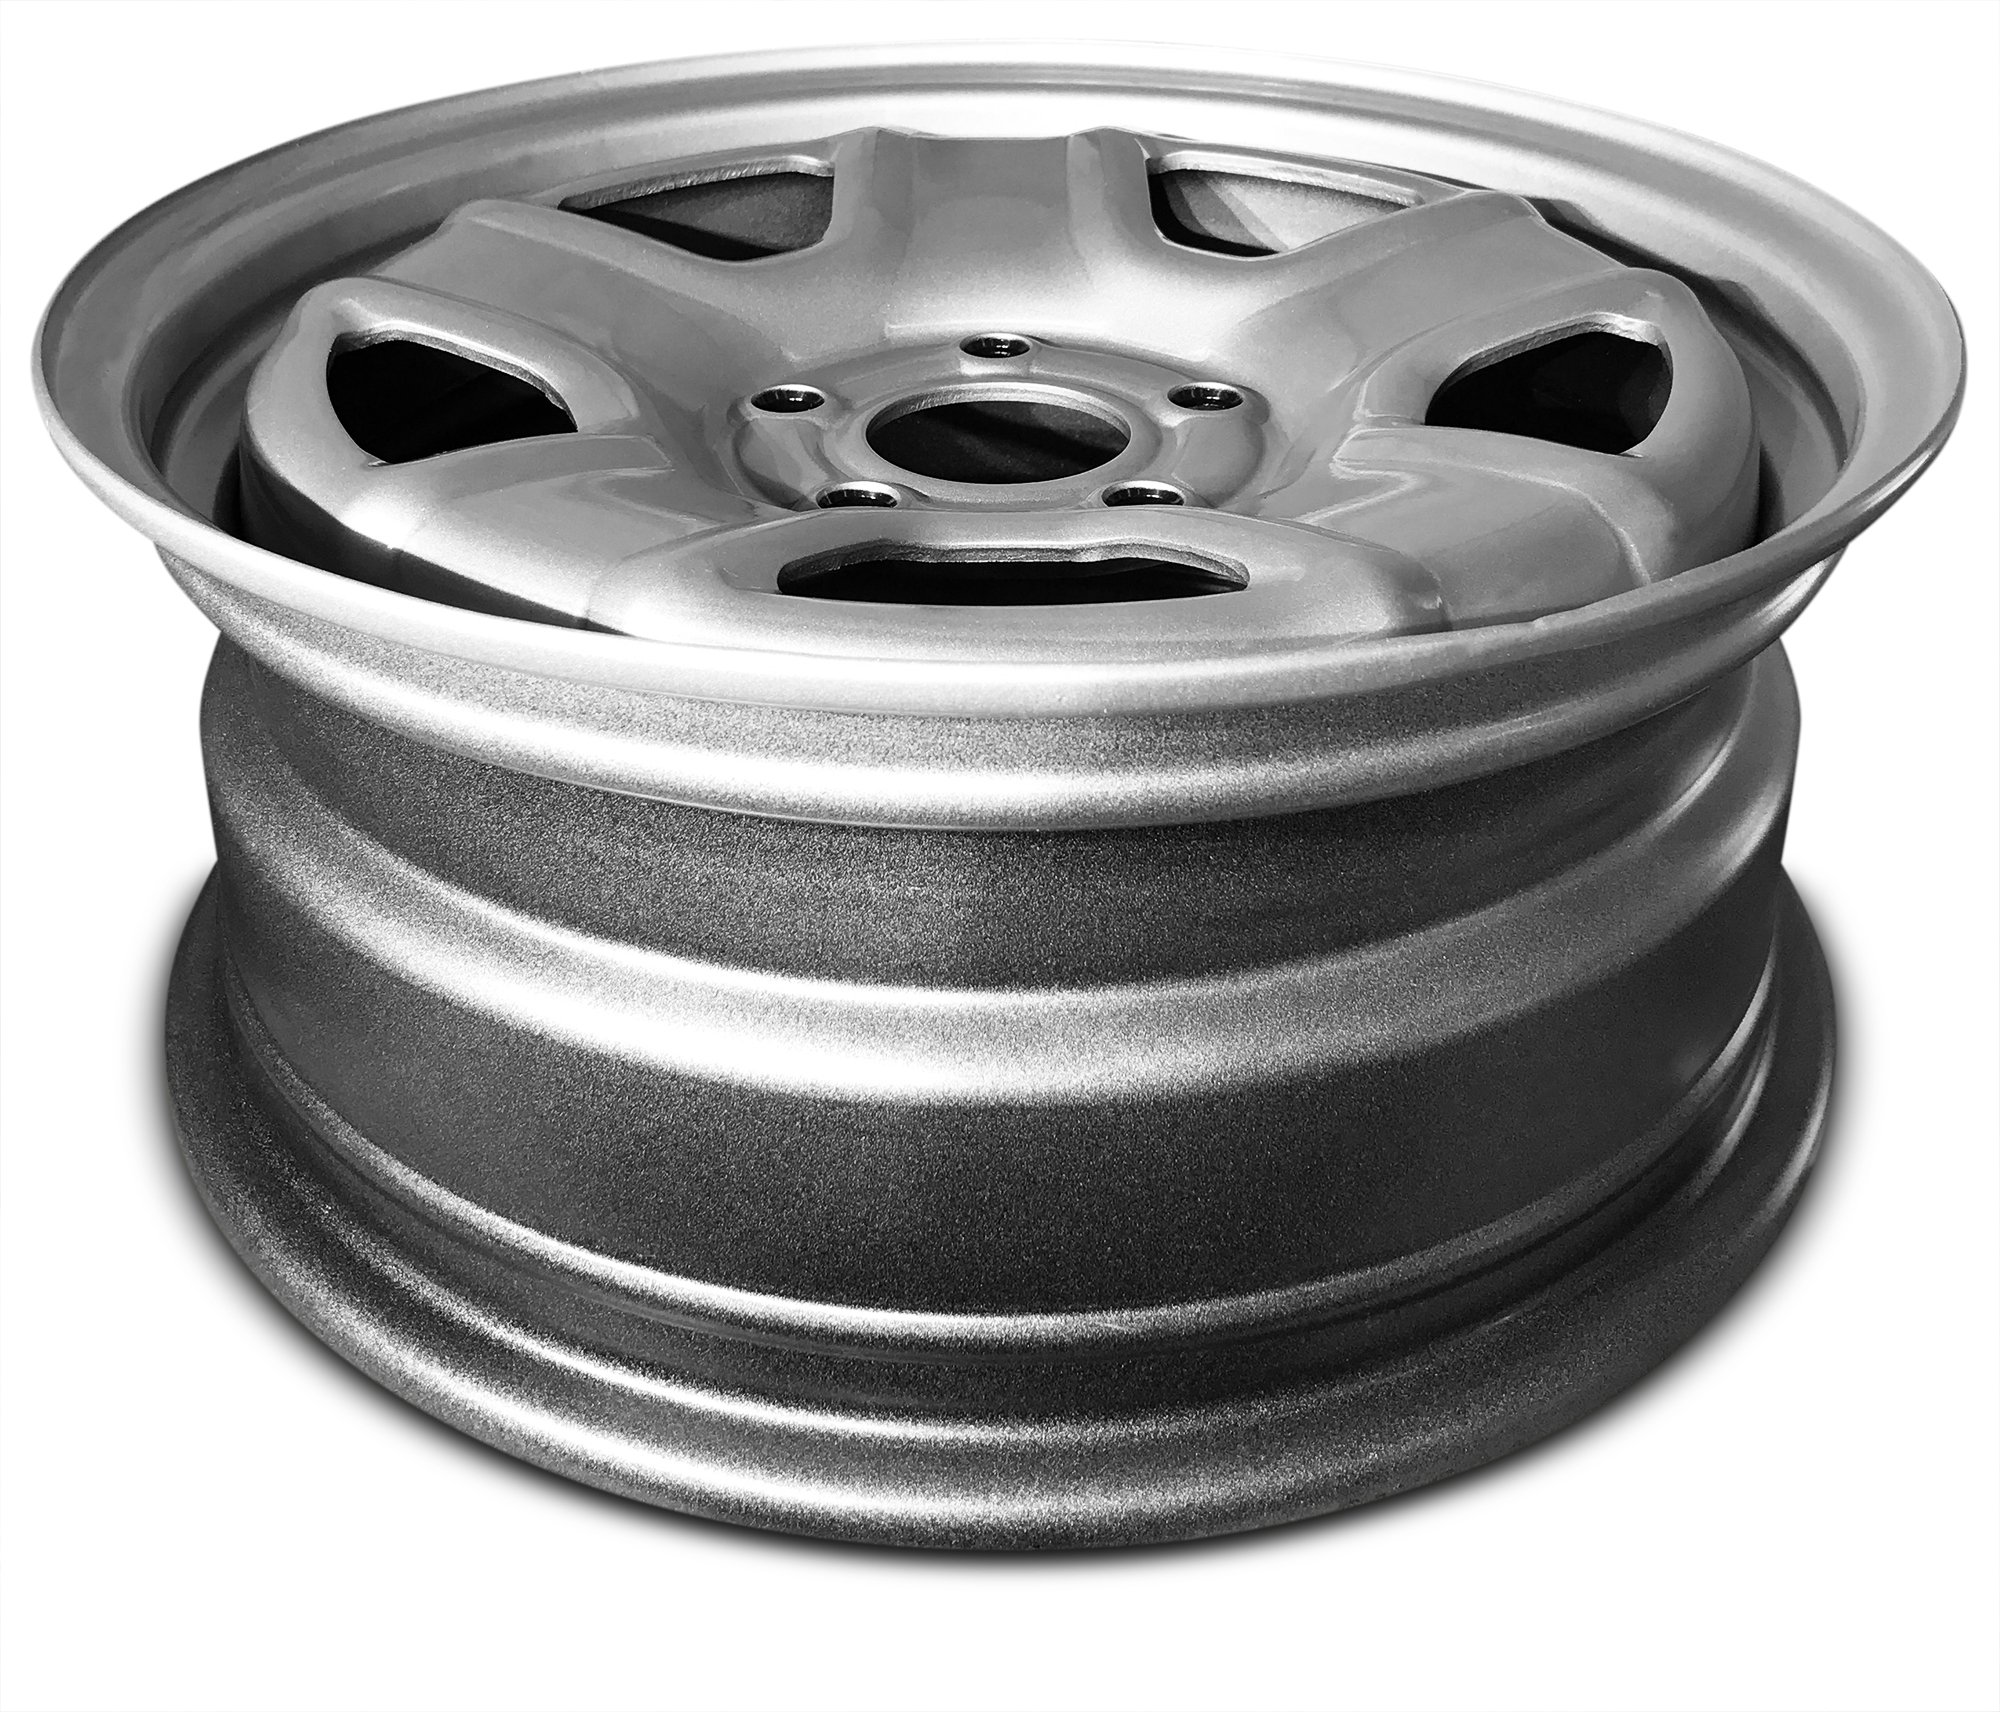 New 16 Inch Jeep Patriot Compass 5 Lug Silver Replacement Steel Wheel Rim 16x6.5 Inch 5 Lug 67.1mm Center Bore 40mm Offset WAA by Road Ready Wheels (Image #5)